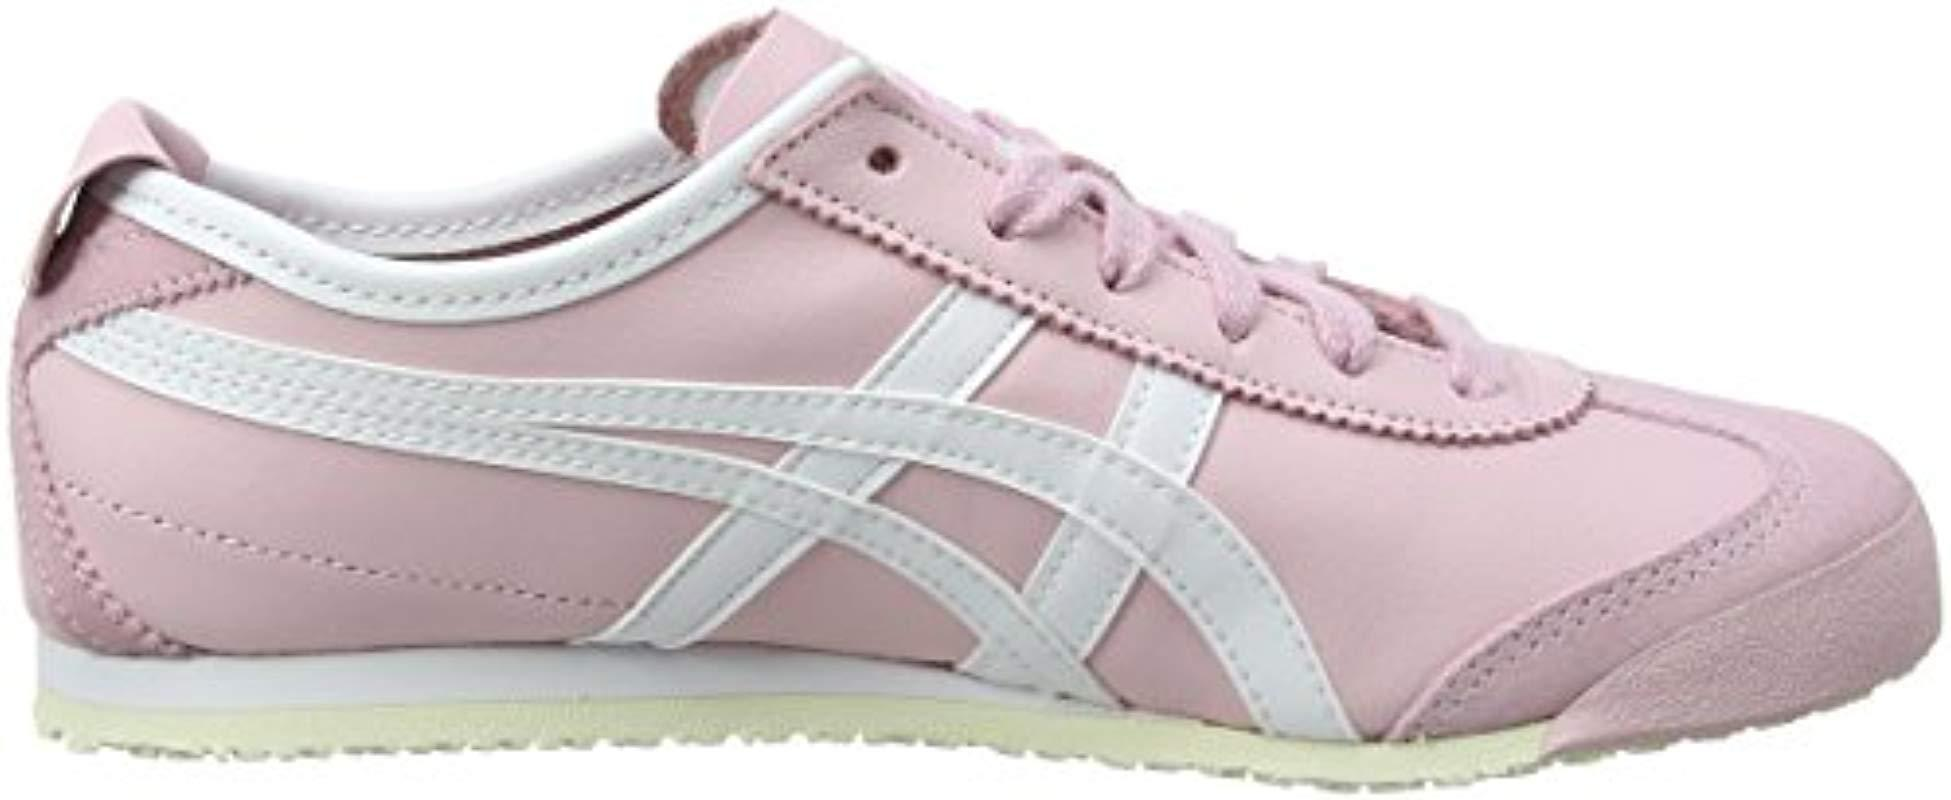 onitsuka tiger mexico 66 black and pink yacht zone